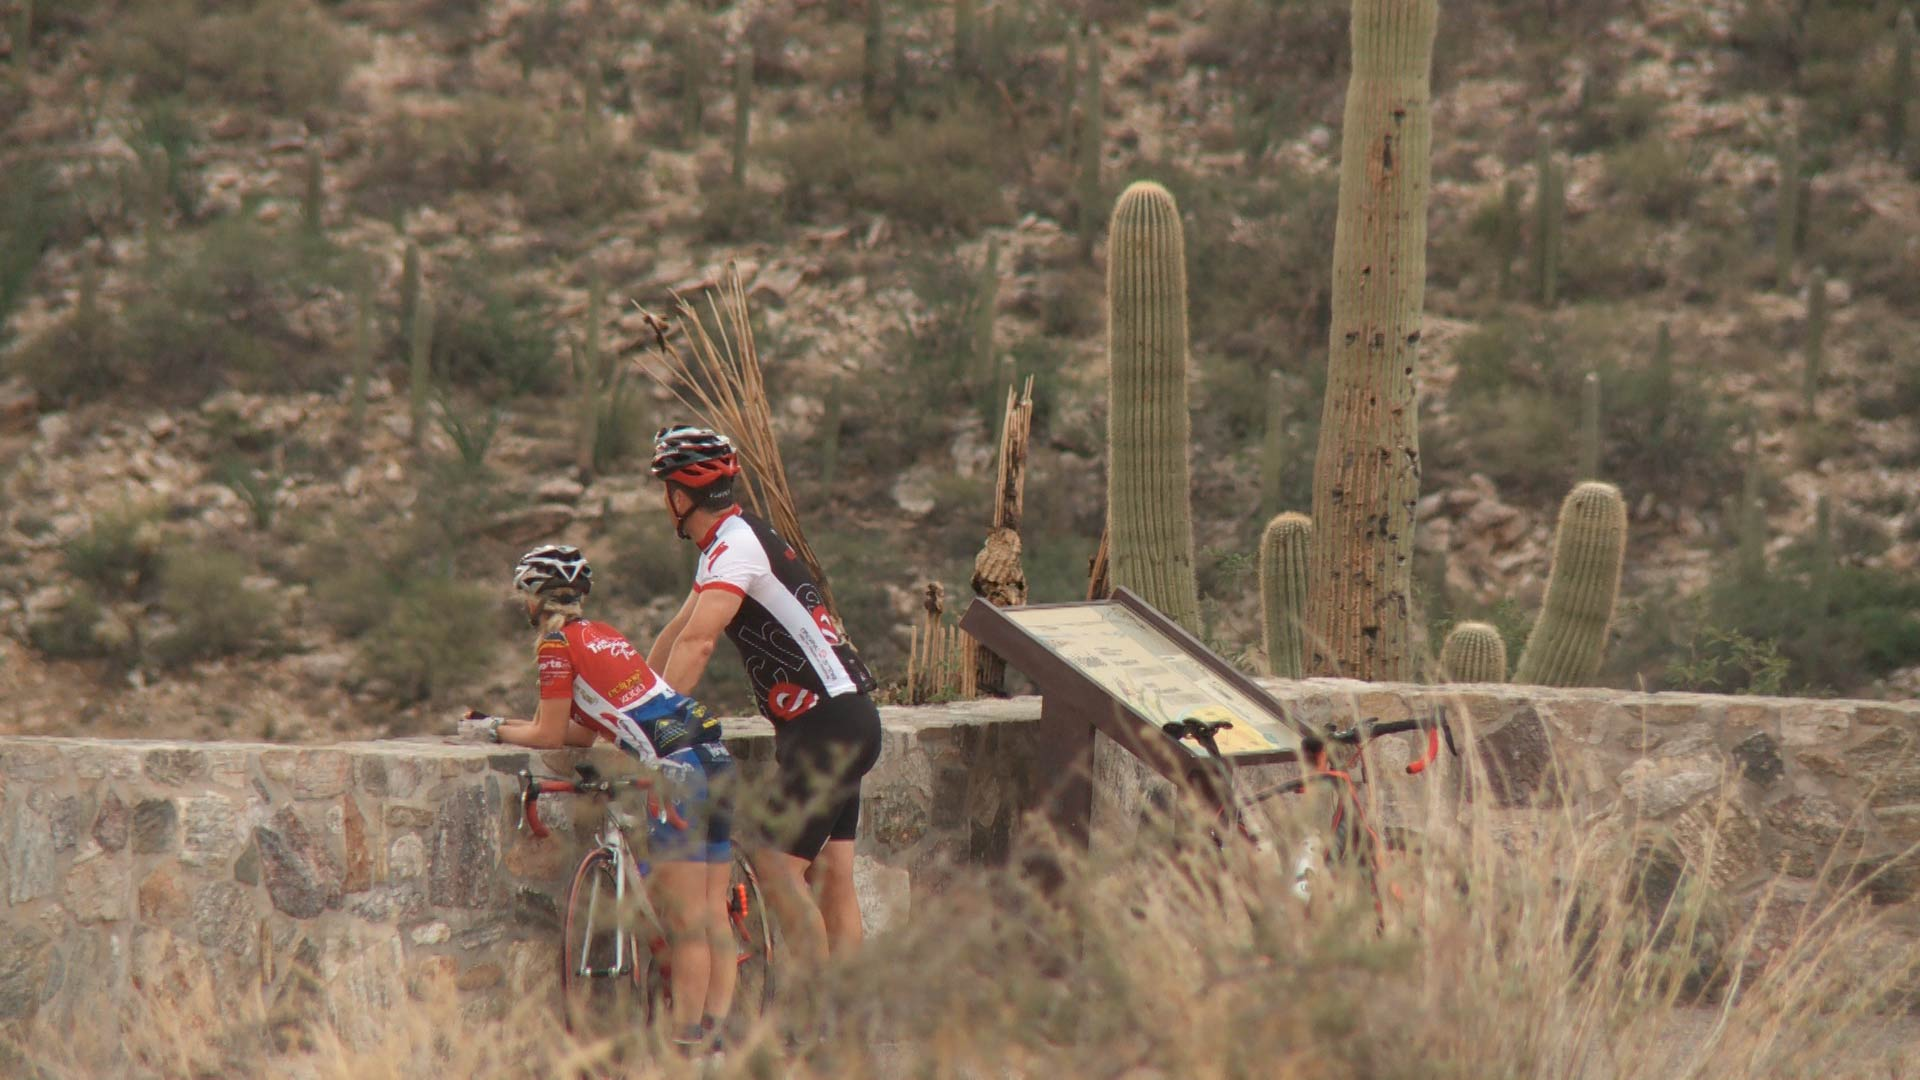 Two cyclists rest at a scenic overlook at Mount Lemmon.